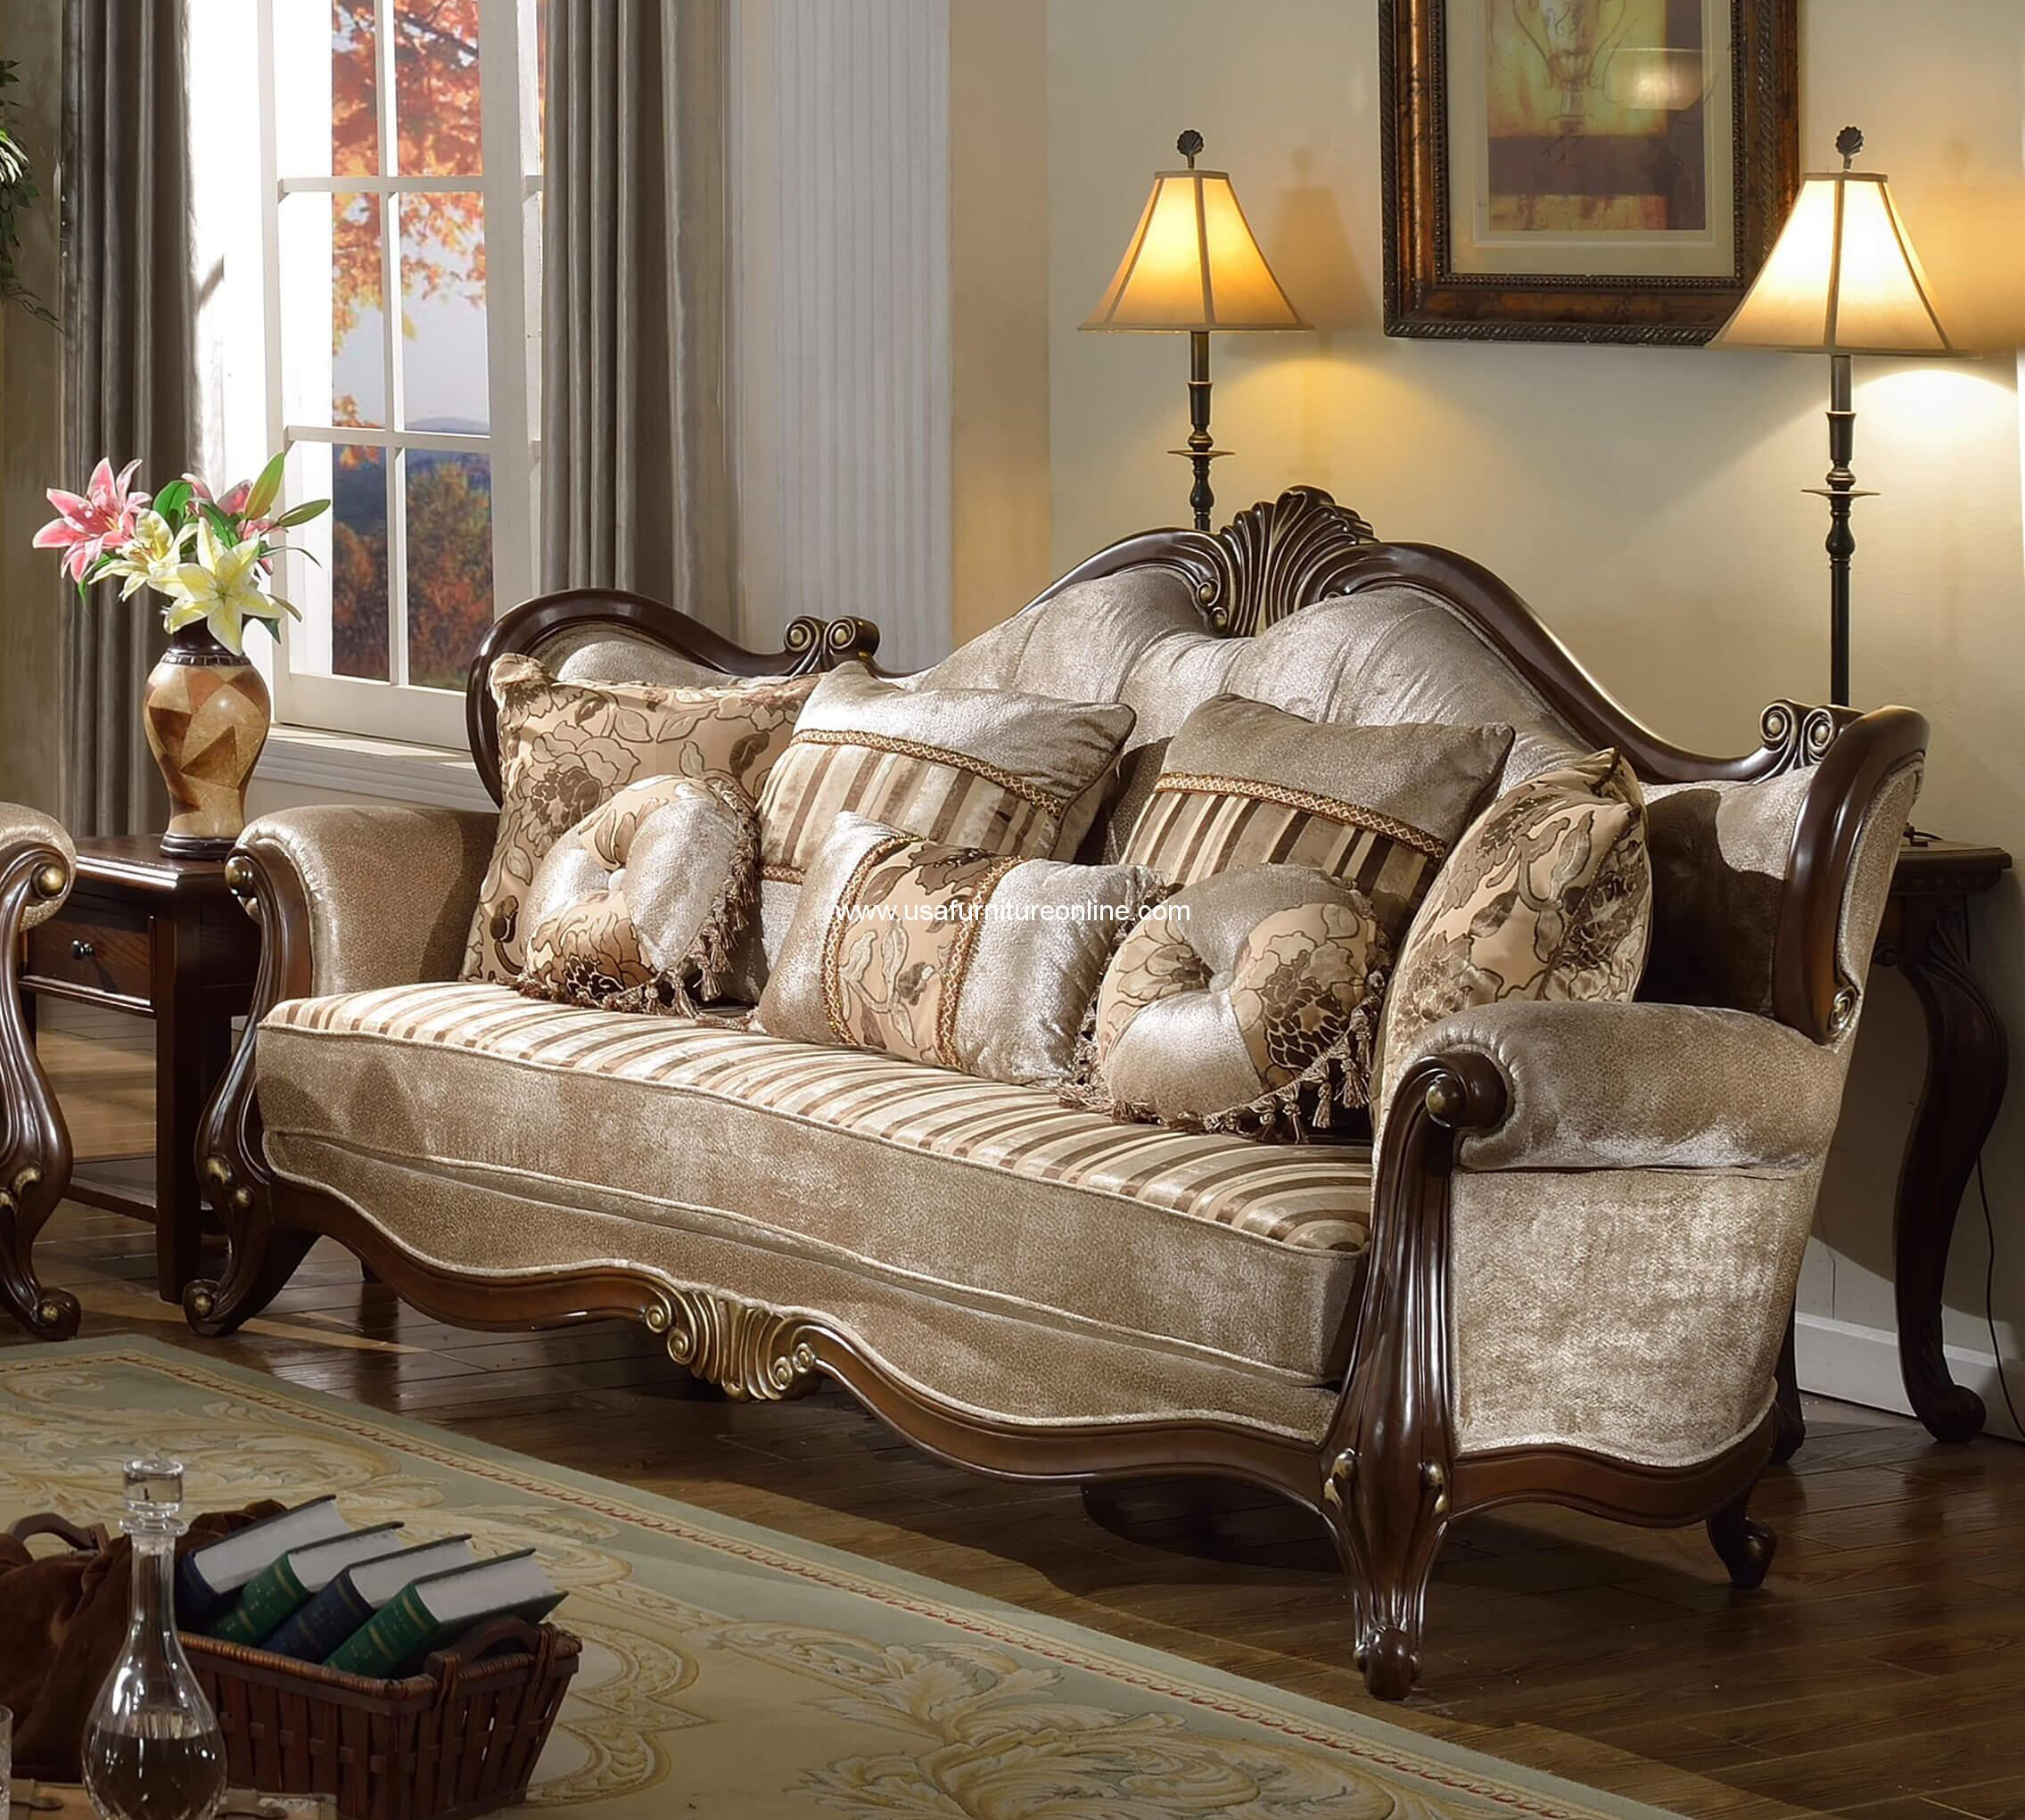 Euro Furniture Montreal Discount 65 Victorian Living Room Super Fast Free Shipping